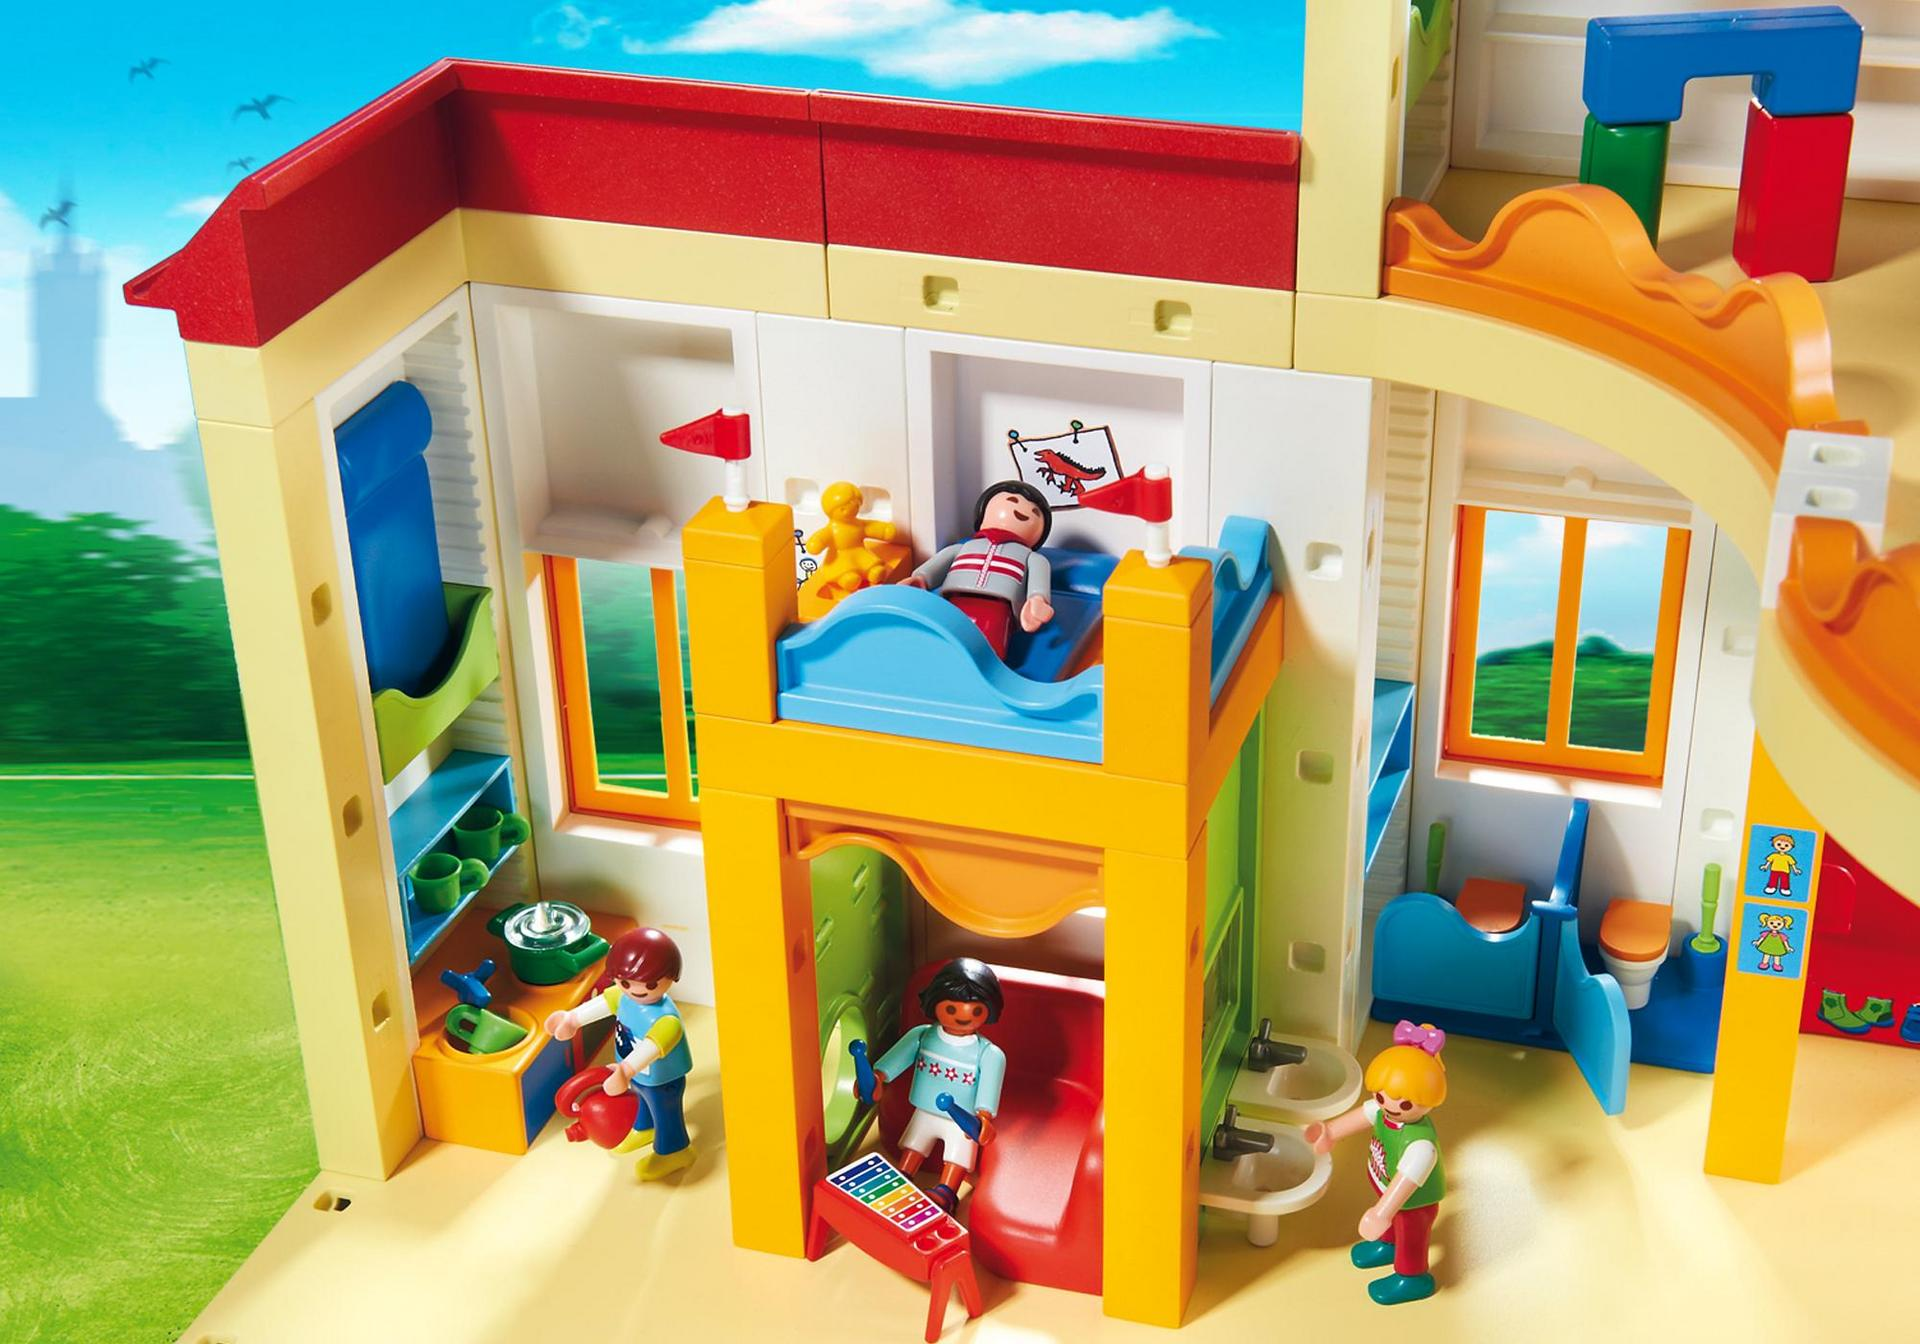 garderie 5567 playmobil france. Black Bedroom Furniture Sets. Home Design Ideas